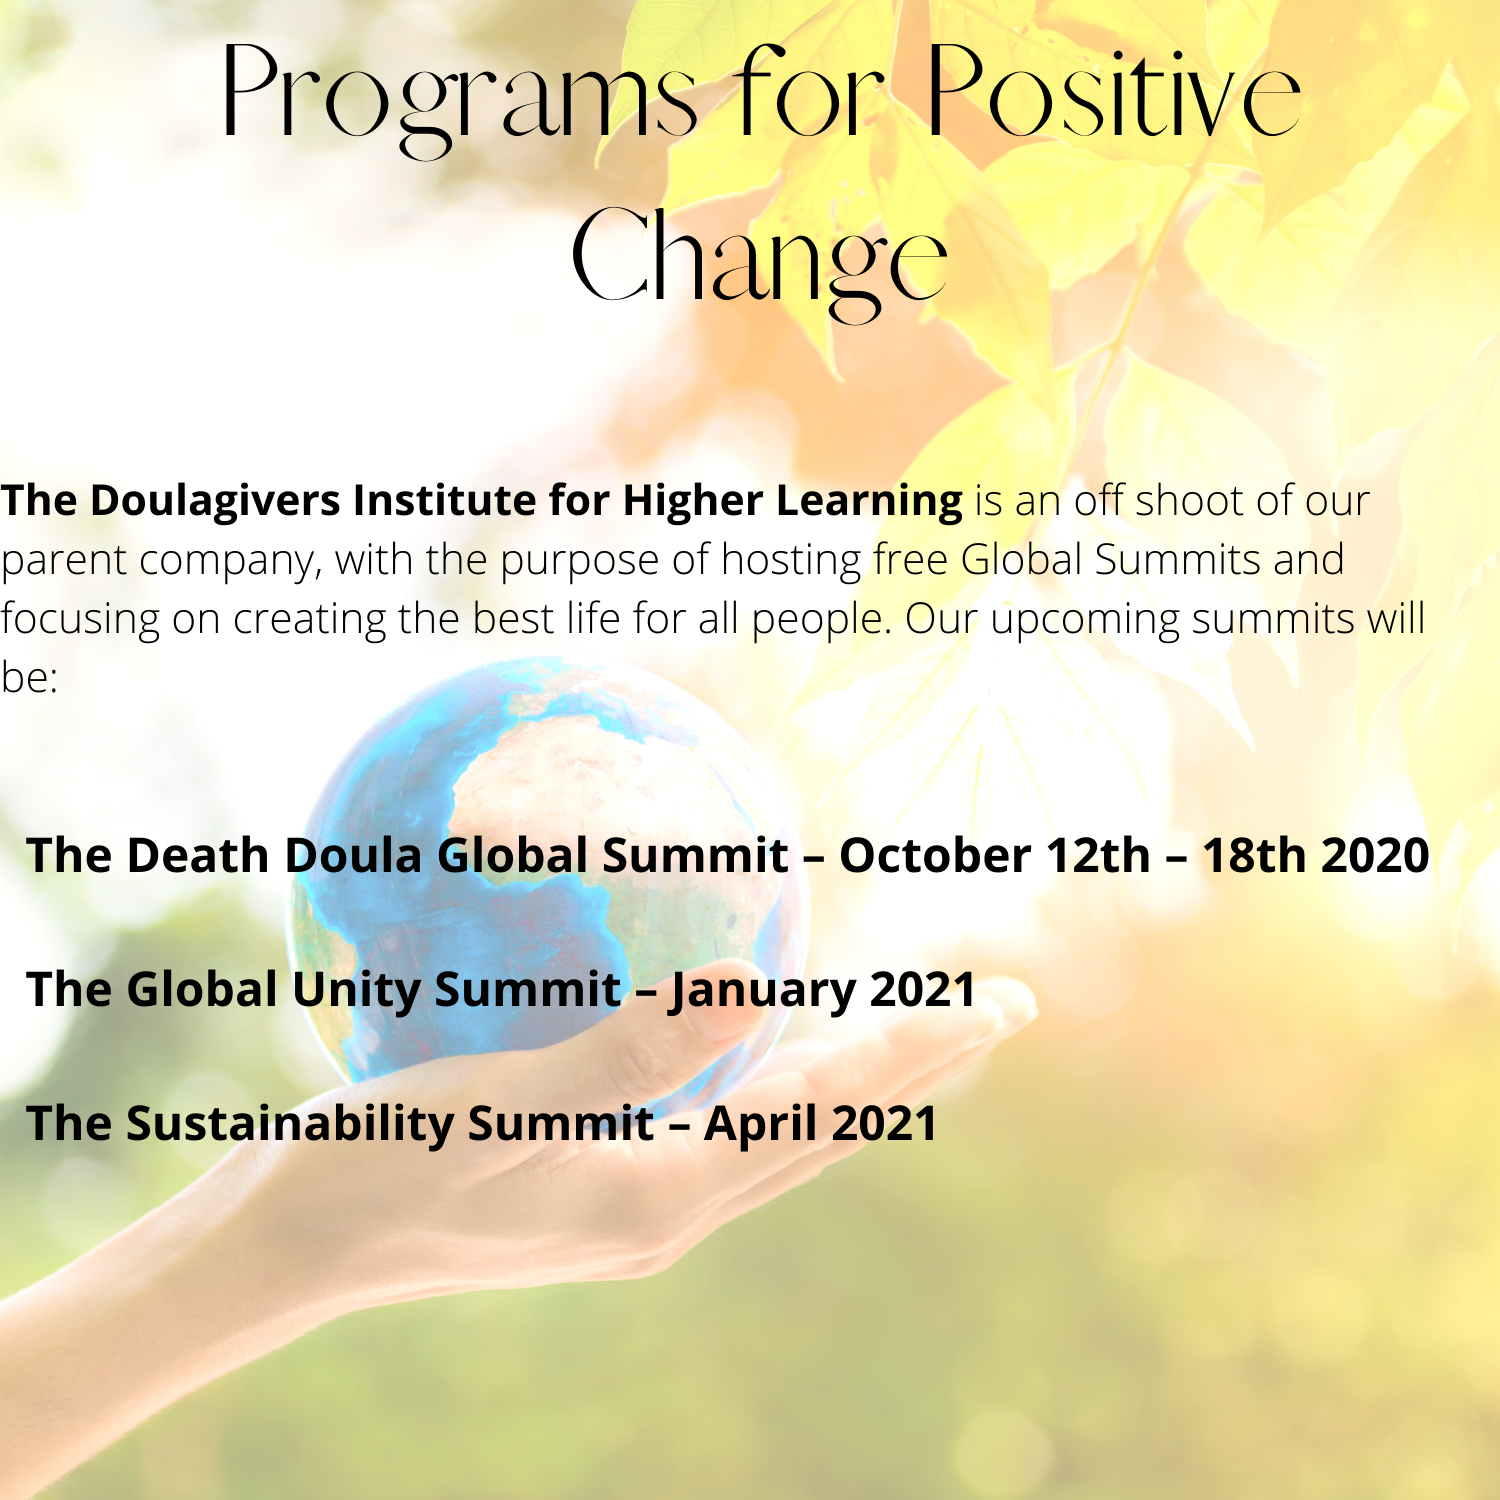 Programs for Positive Change (2)